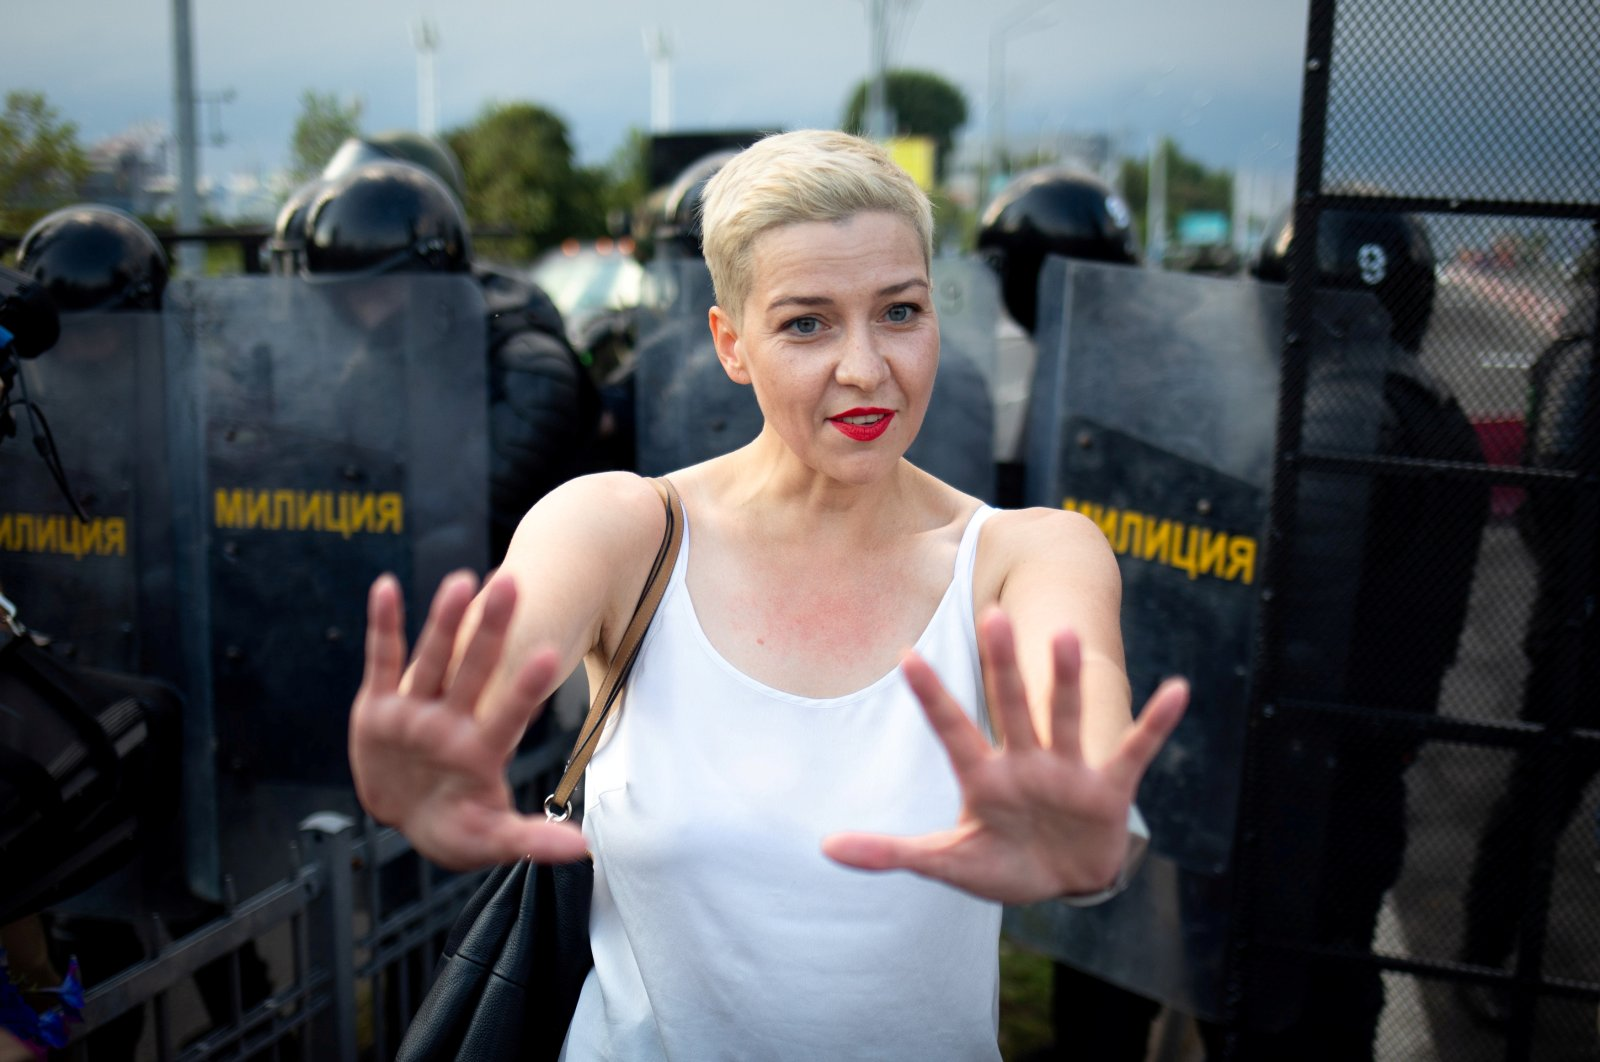 Belarusian opposition politician Maria Kolesnikova gestures in front of law enforcement officers during a rally in Minsk, Belarus, Aug. 30, 2020.  (Reuters Photo)